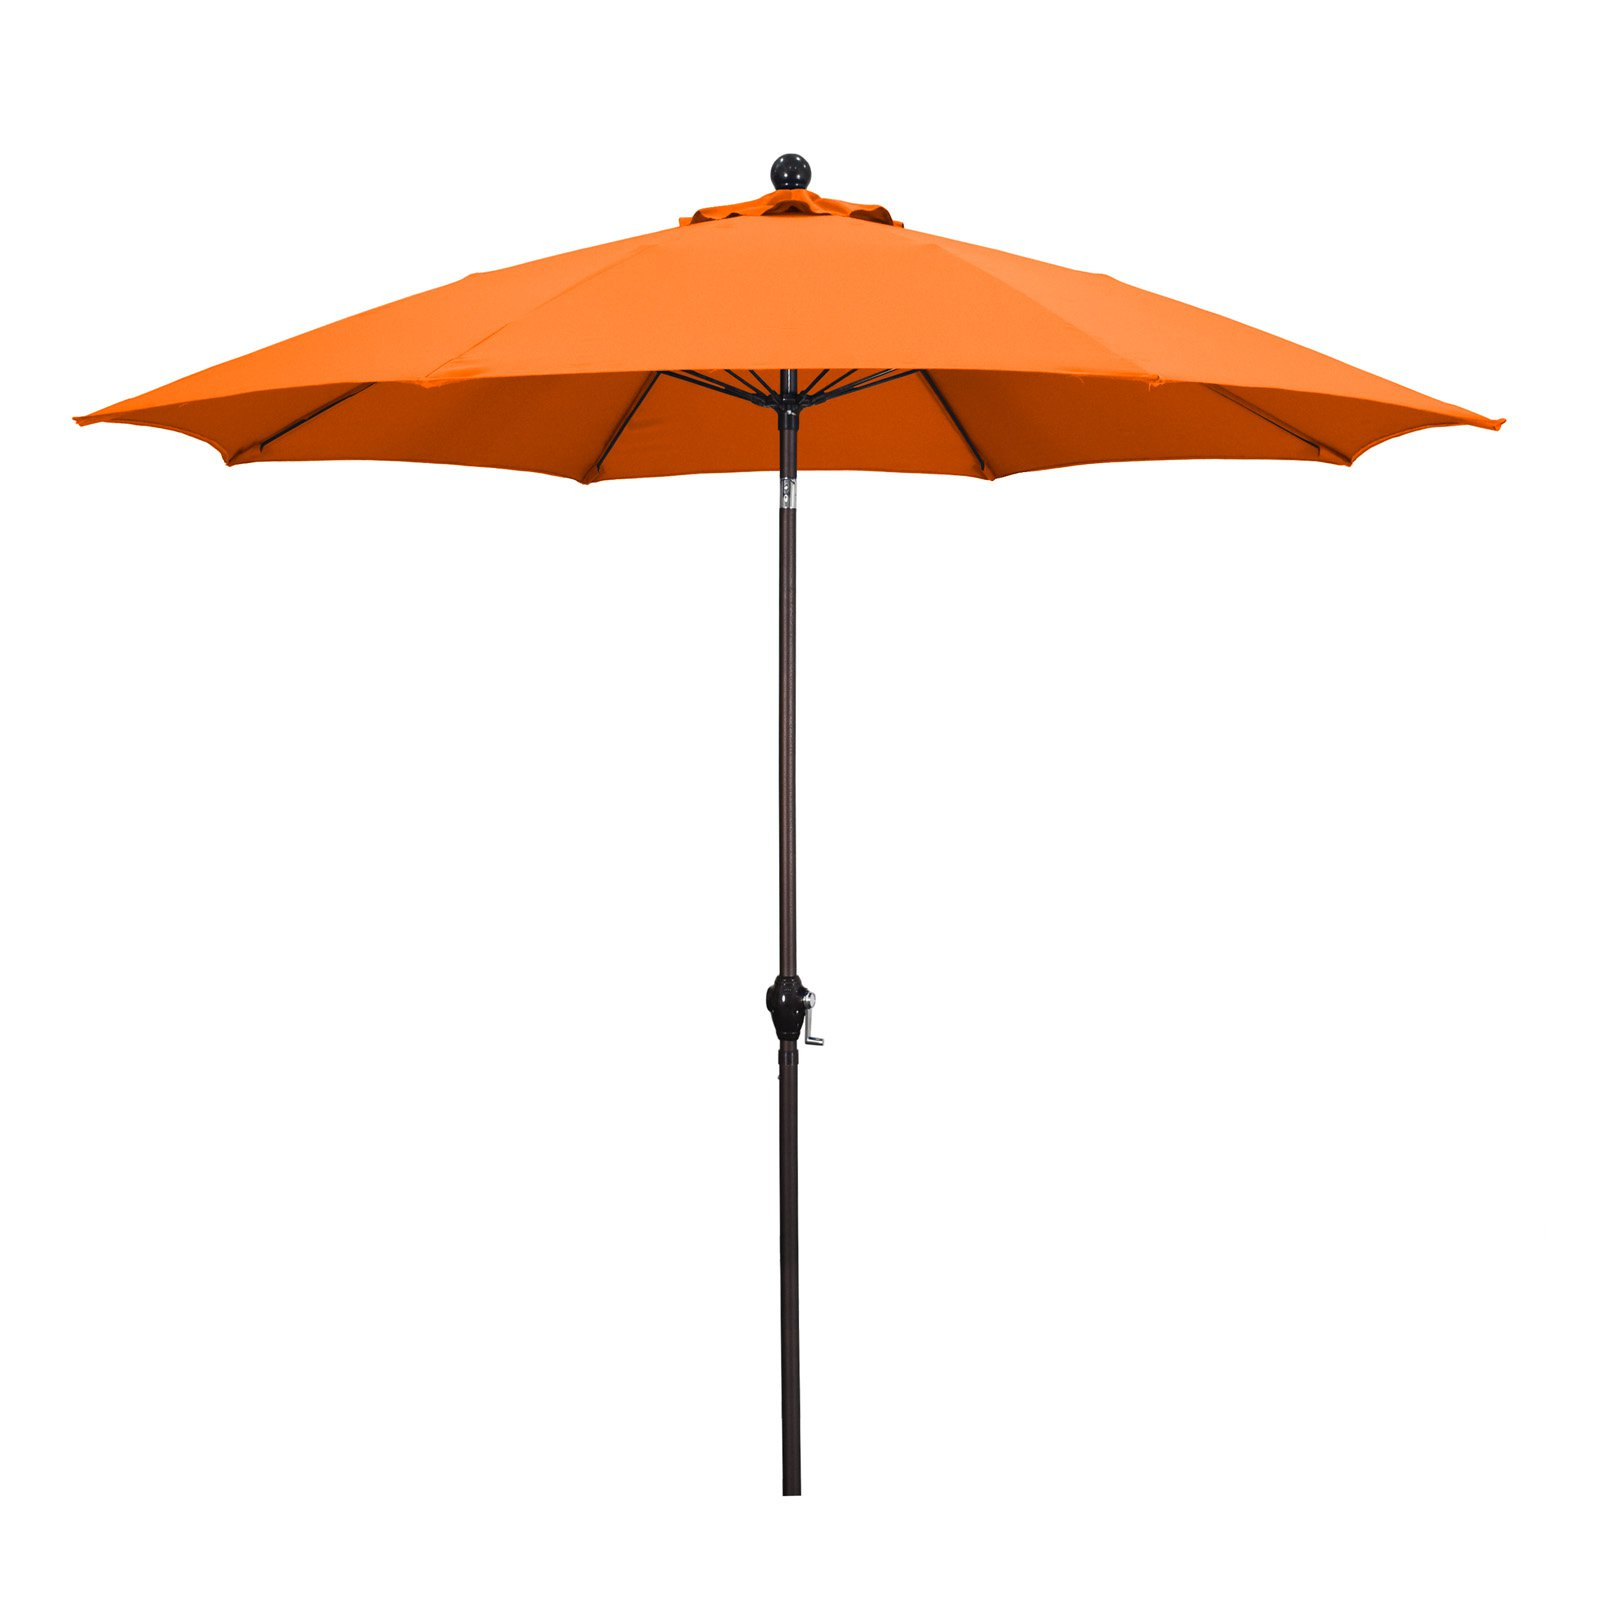 Newest Market Umbrellas With Sunline 9' Patio Market Umbrella In Polyester With Bronze Aluminum Pole  Fiberglass Ribs 3 Way Tilt Crank Lift (Gallery 11 of 20)